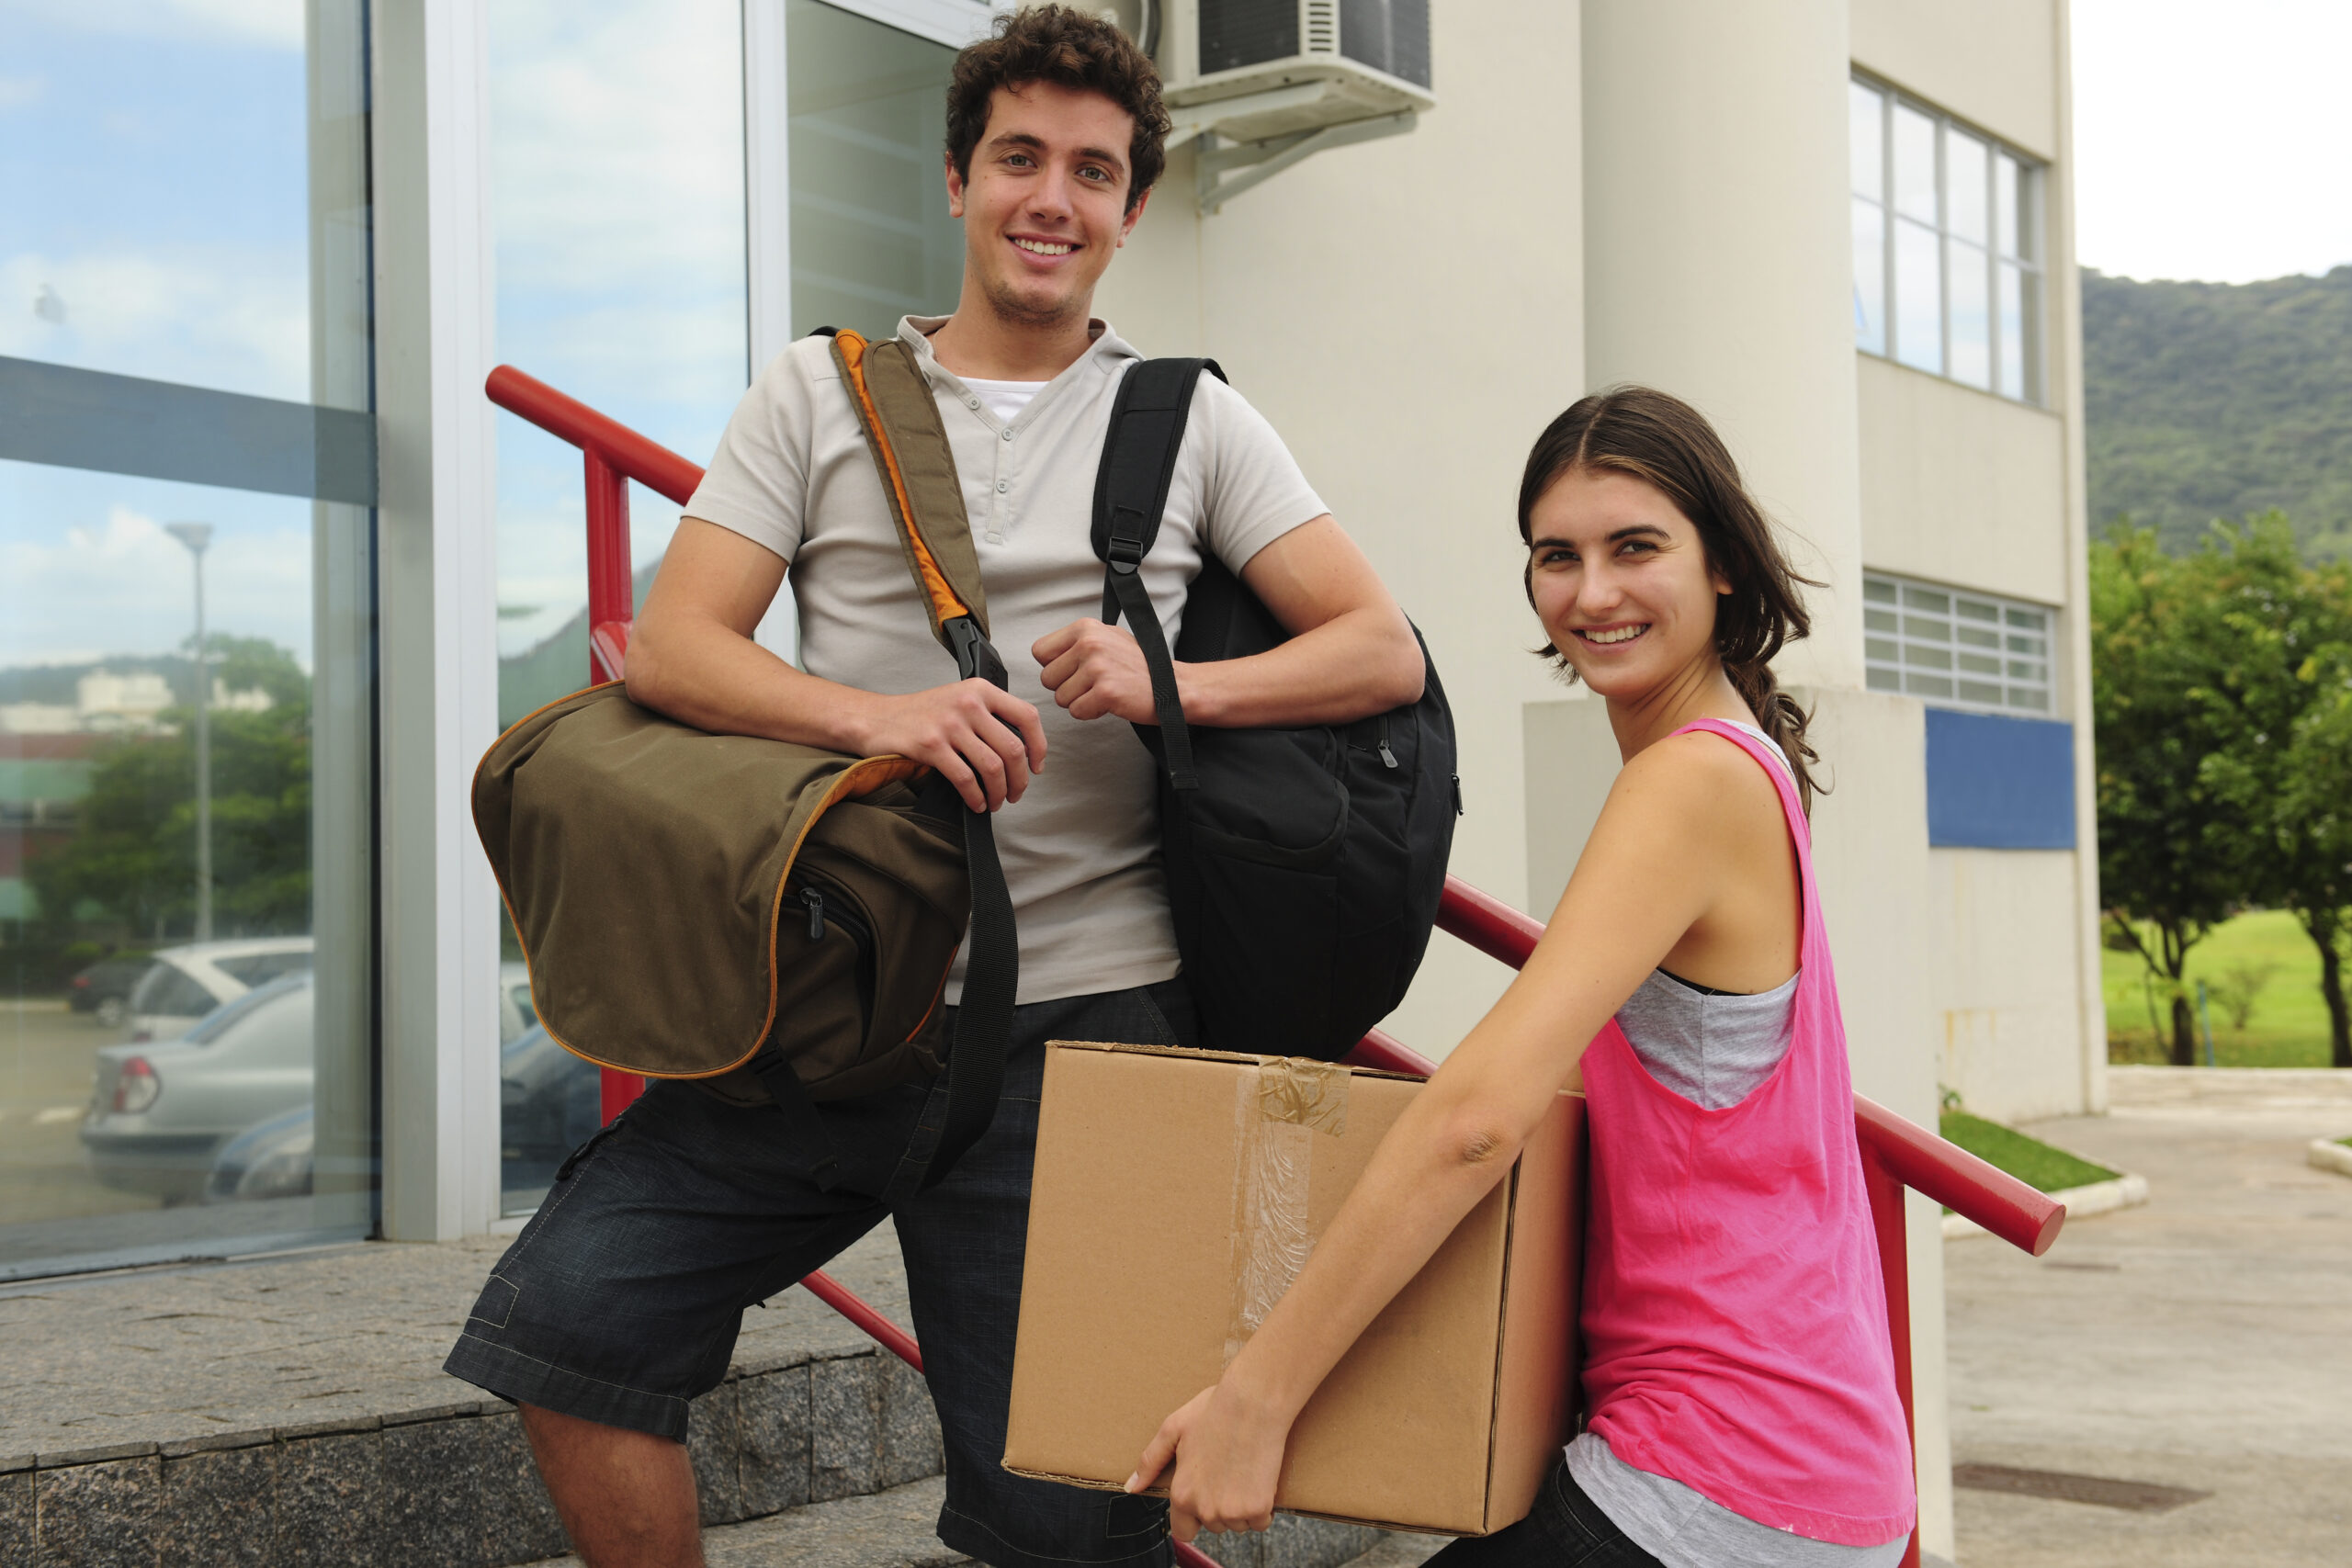 Two students carrying boxes and bags walking up the stairs of a building to move in